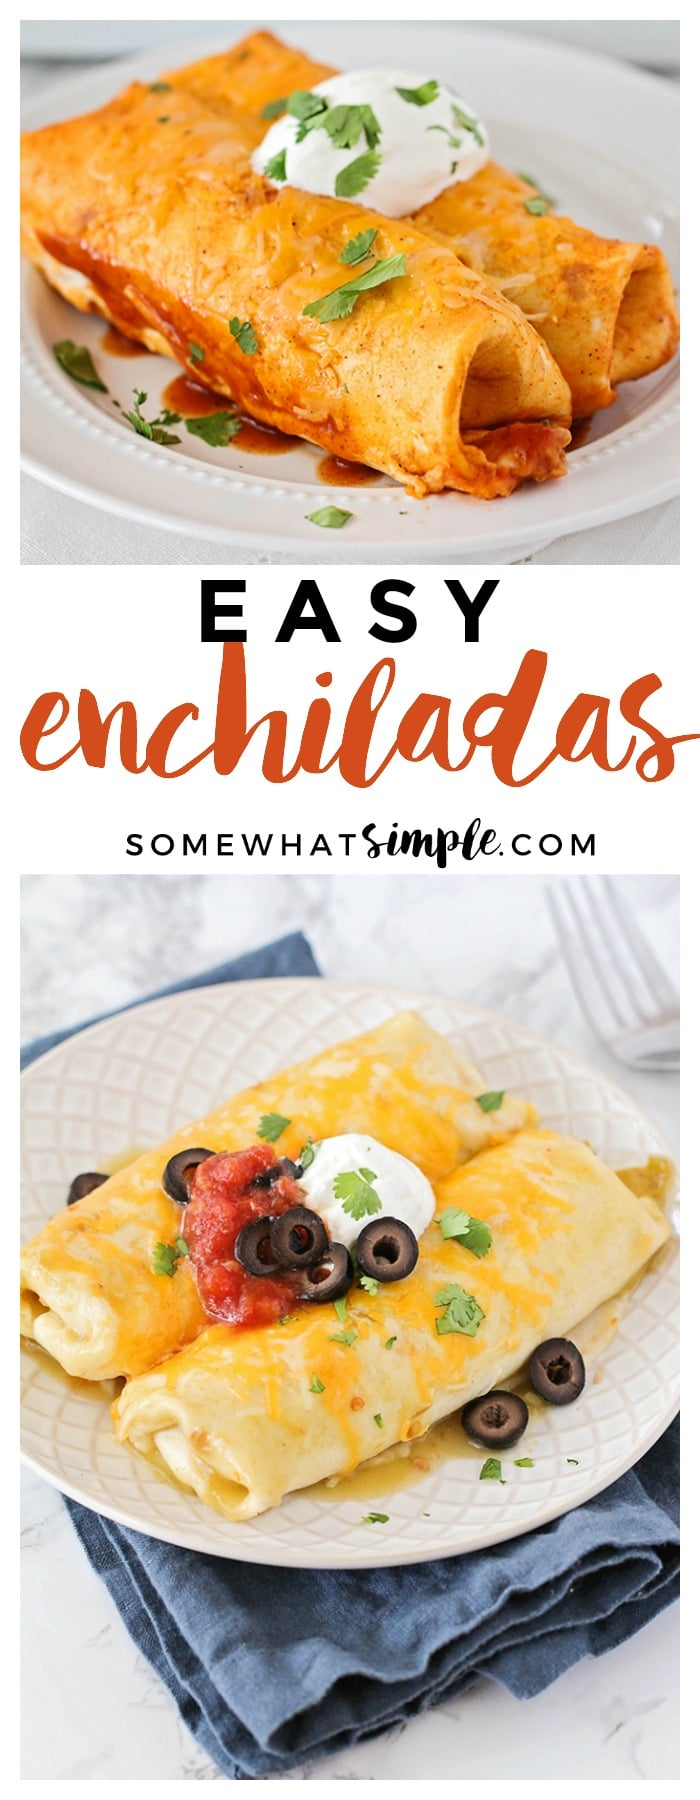 Here is an easy enchilada recipe with the BEST store-bought enchilada sauce. (And trust me, we've tried them ALL!)